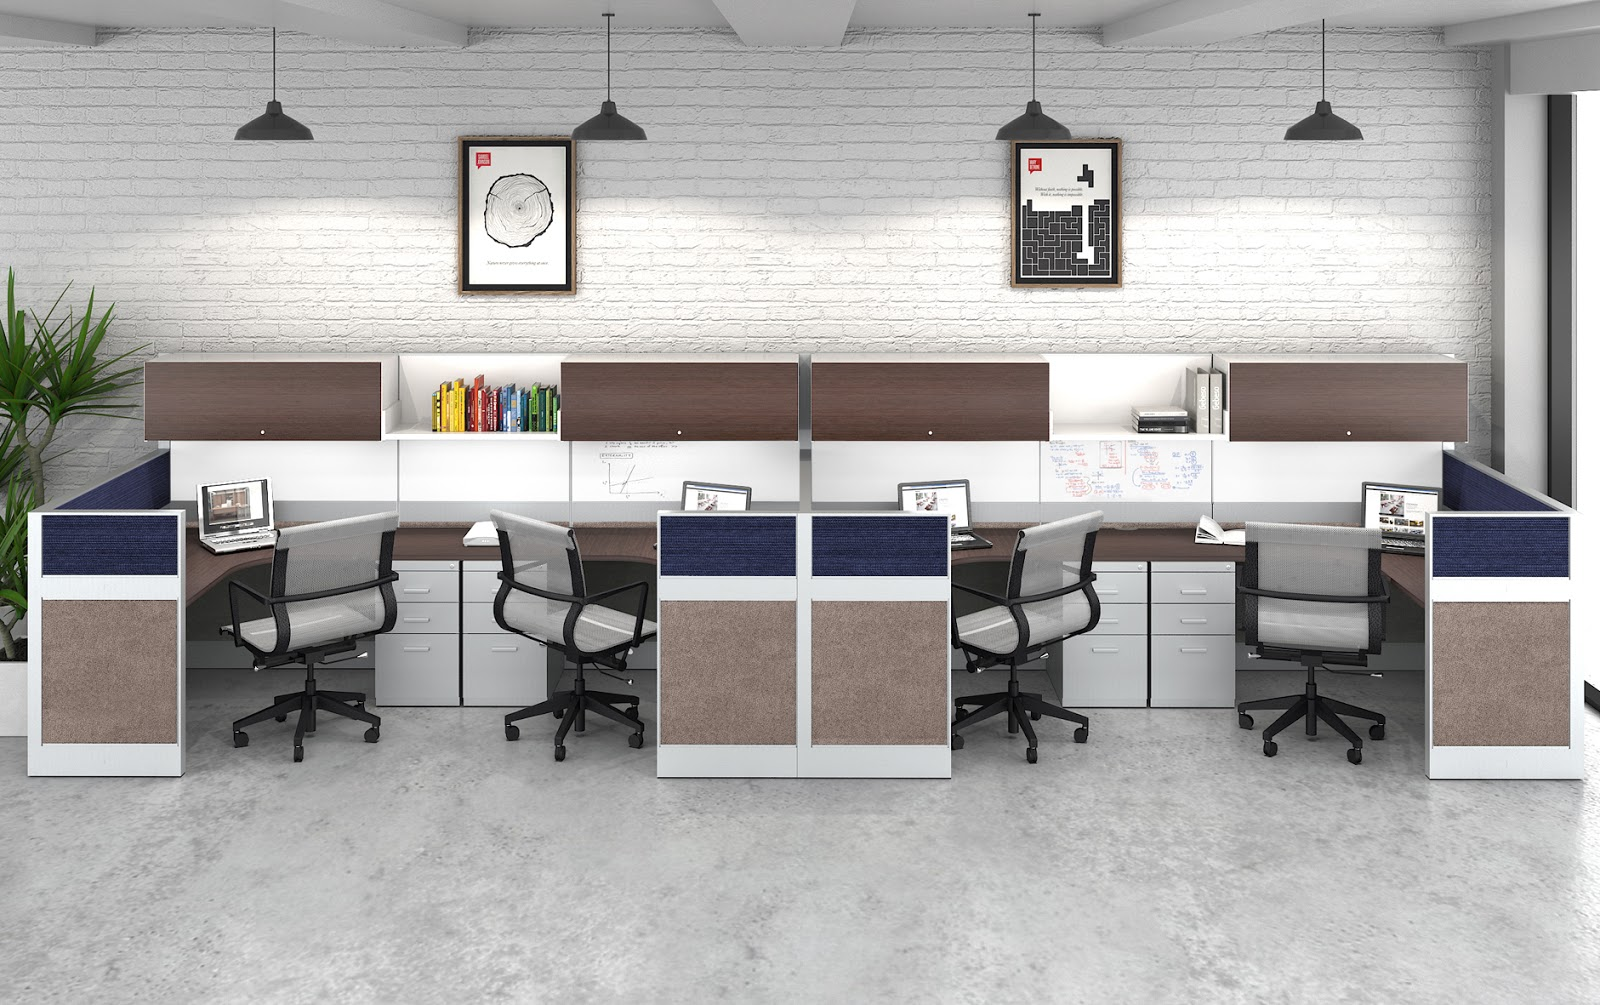 furniture-to-build-a-collaborative-environment